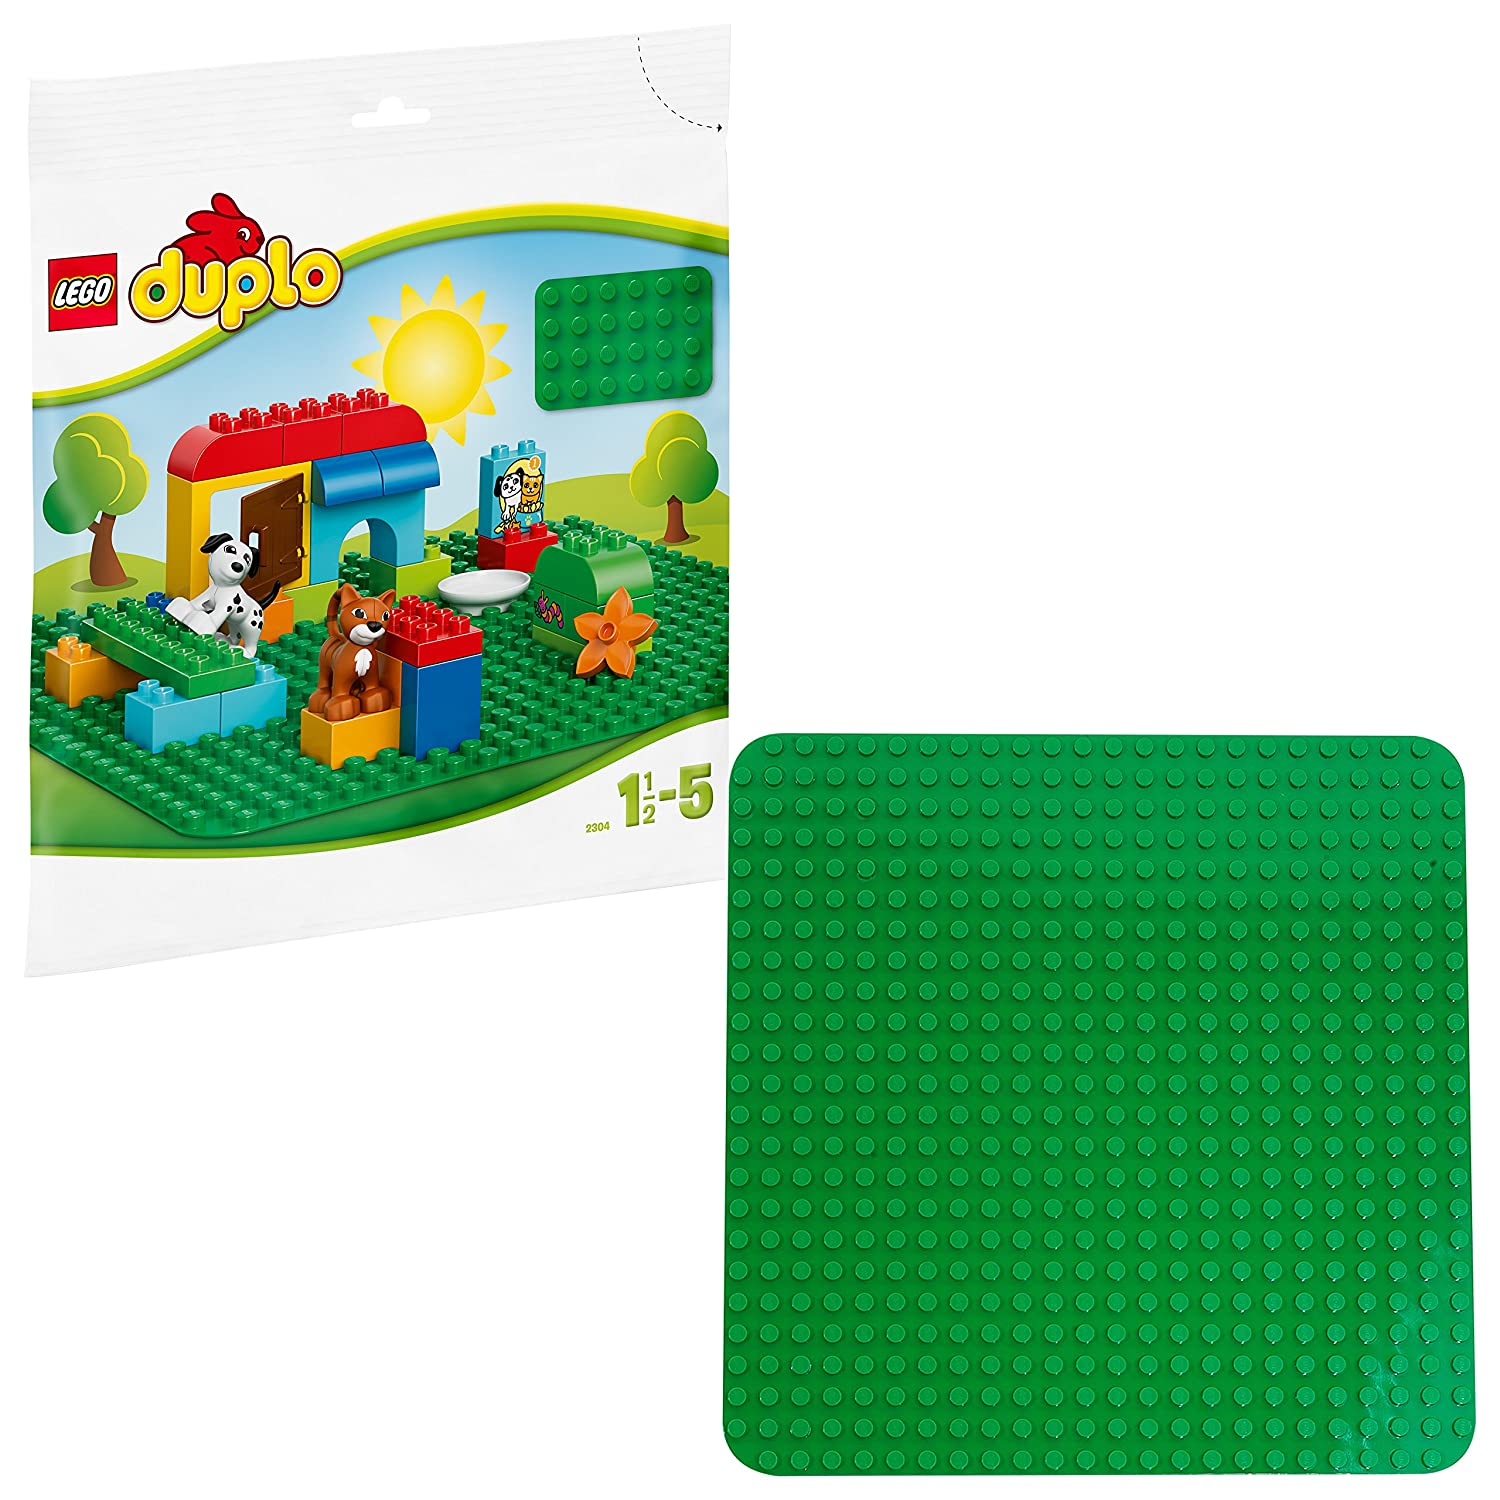 LEGO 2304 Duplo Large Green Building Plate Creative Preschool Toy Base Bulk Building_Sets Lego Shop